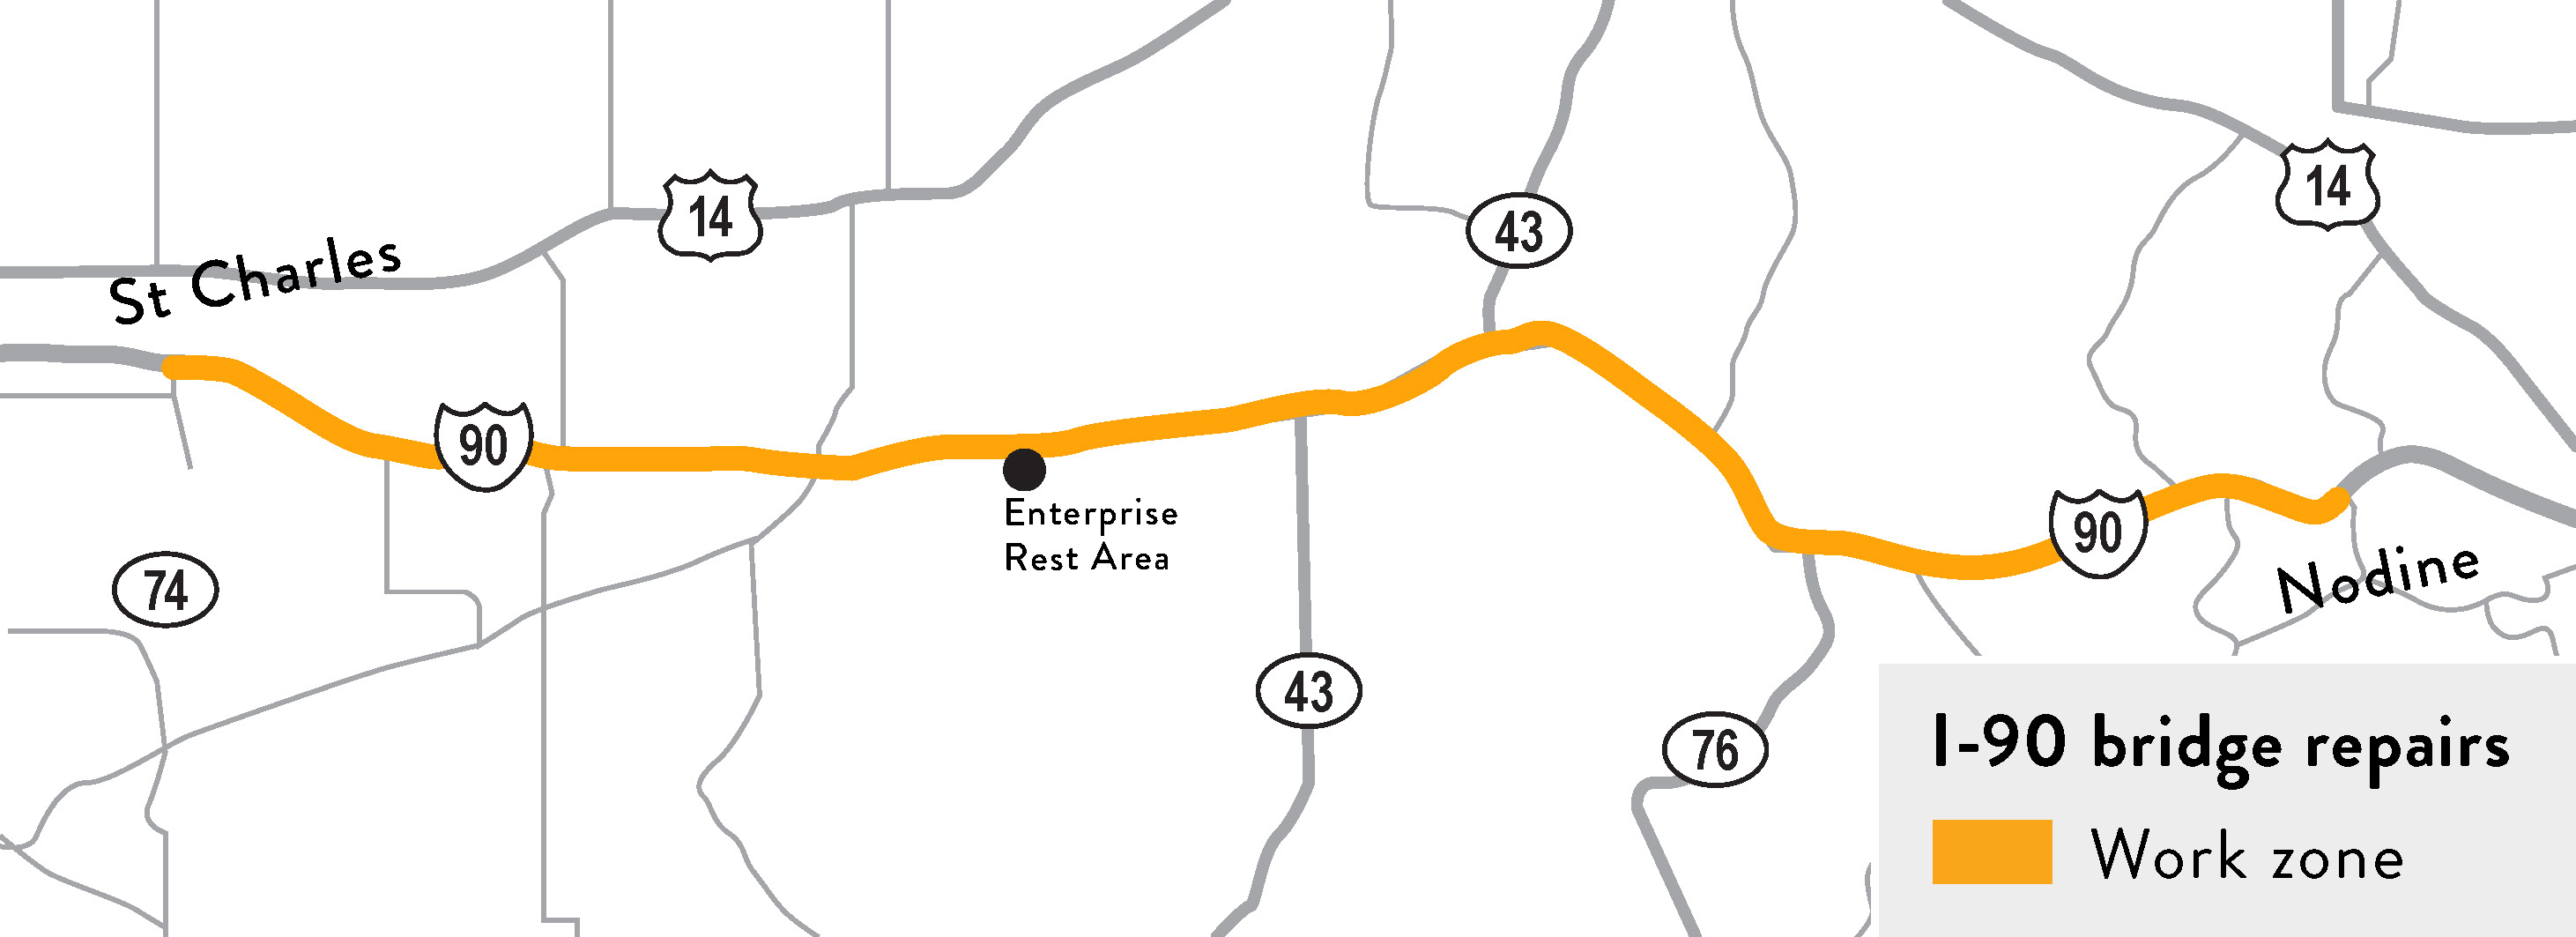 I-90 bridge repair project map